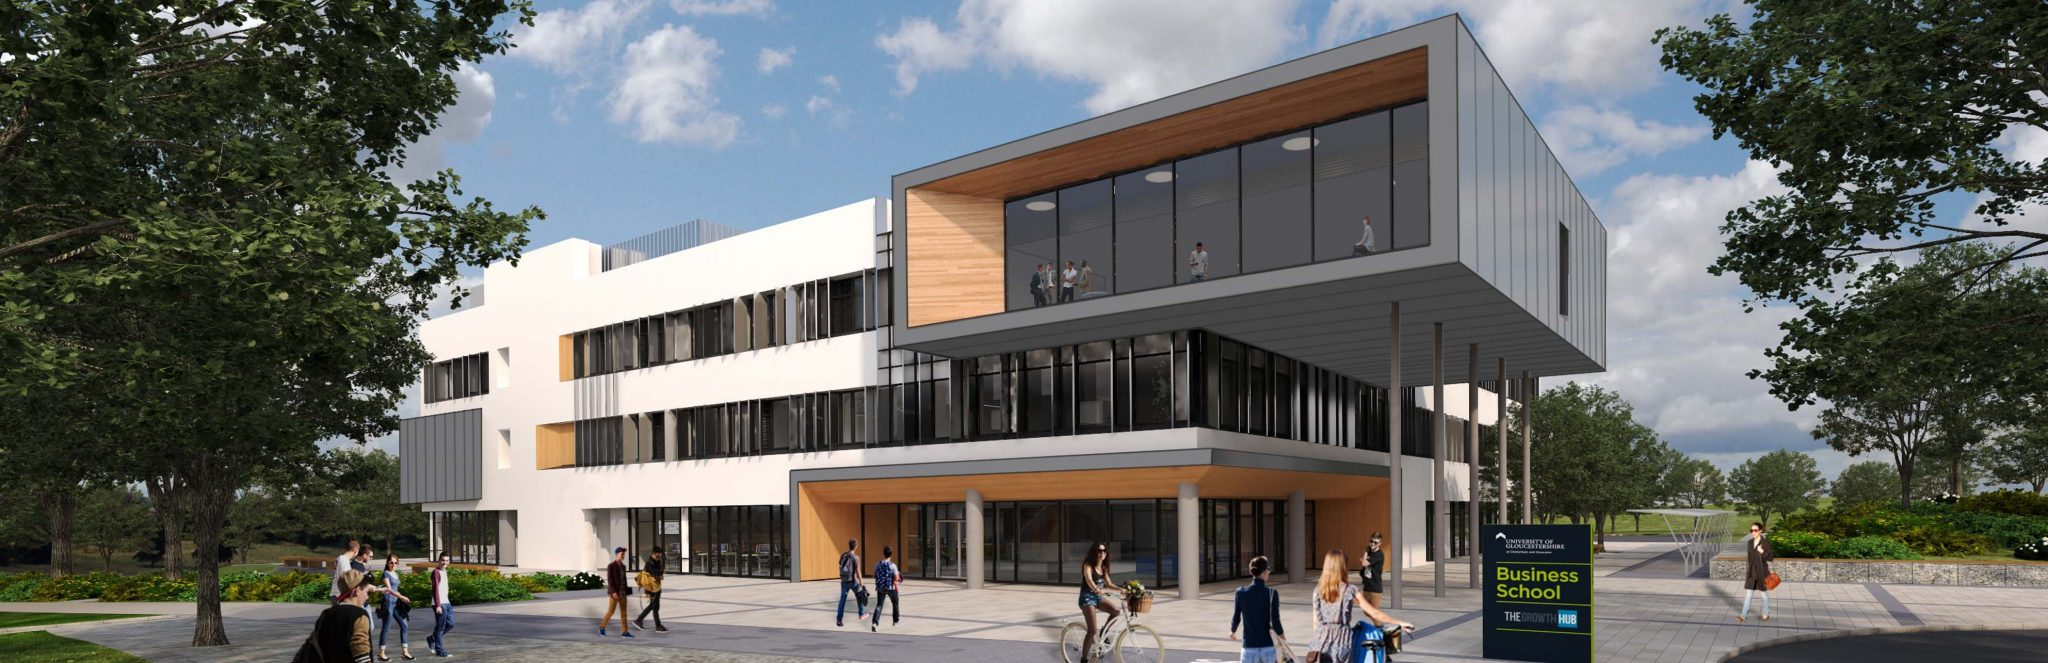 Oxstalls Business School and Growth Hub University of Gloucester